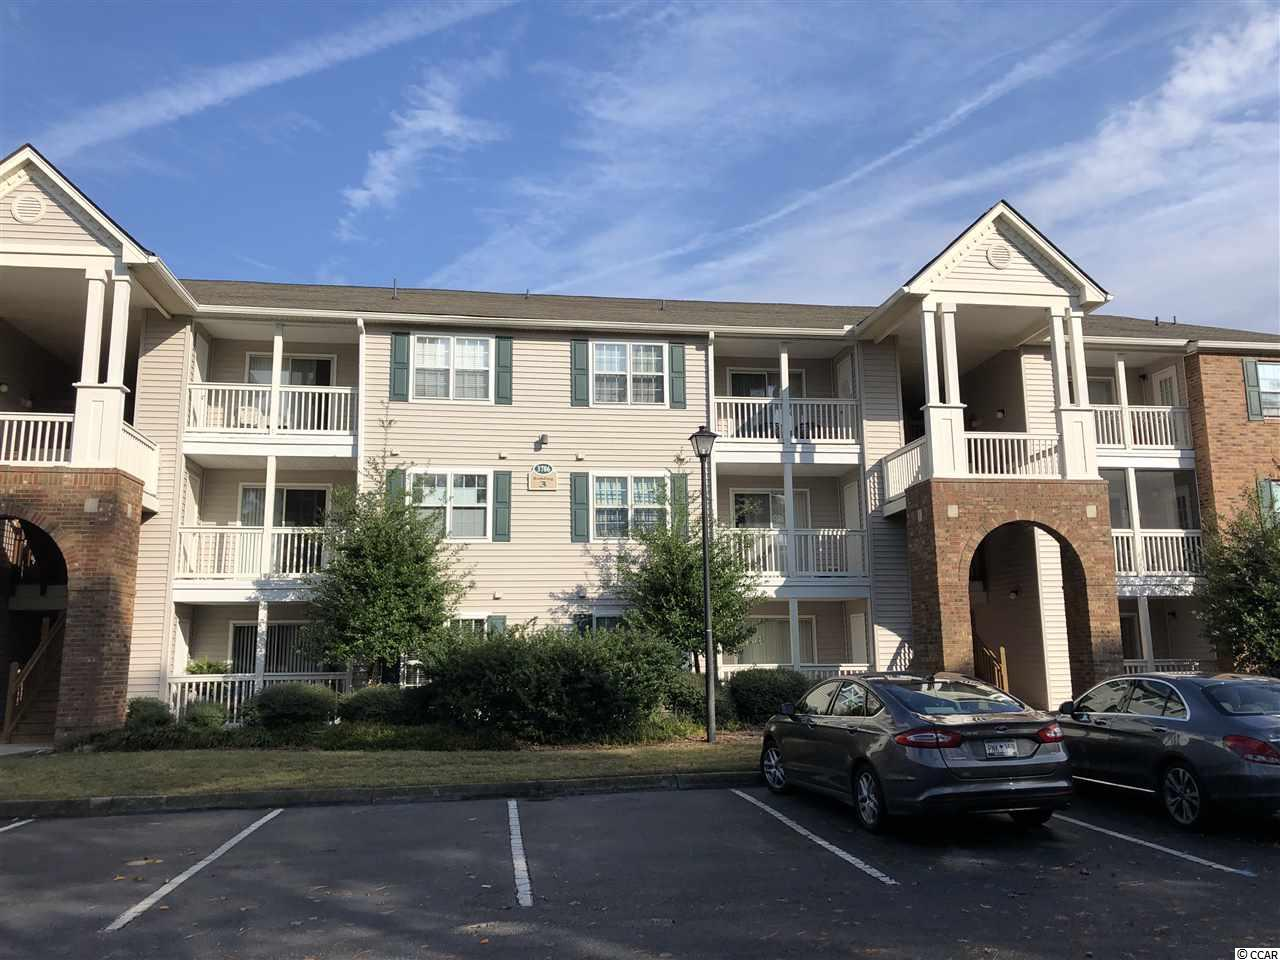 Condo in Broadway Station : Myrtle Beach South Carolina